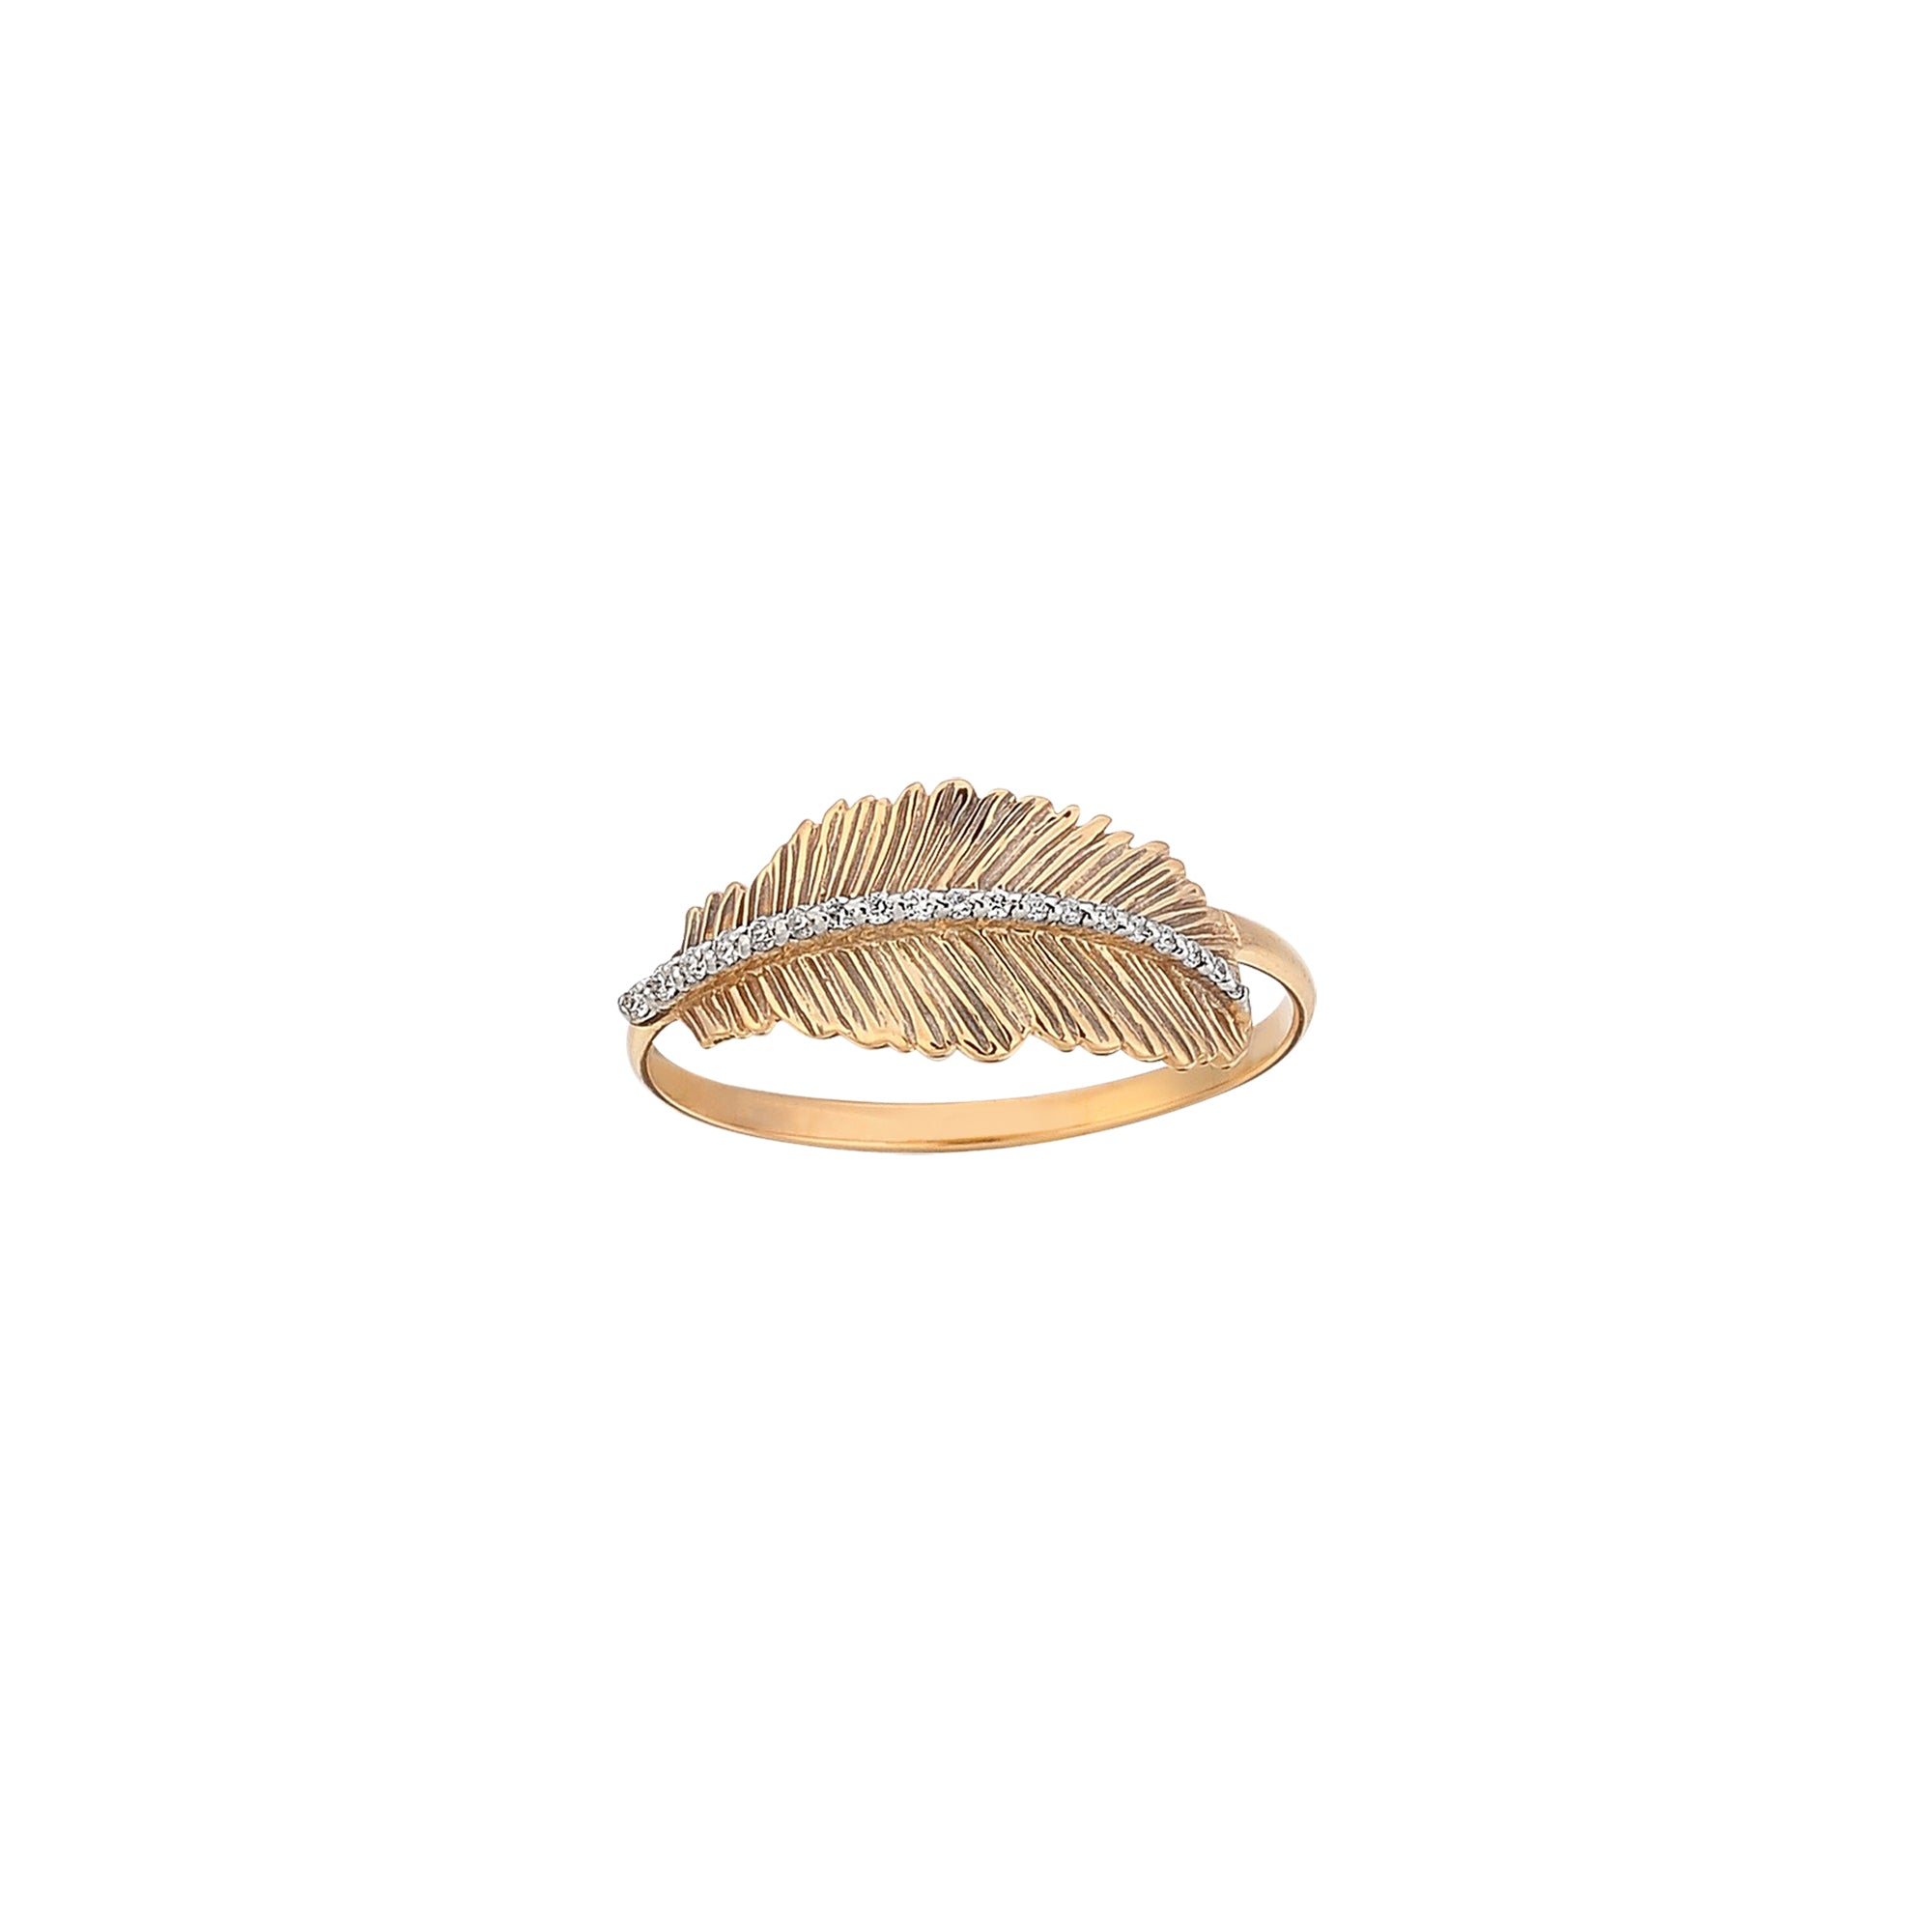 Raven Feather Diamond Ring - Kismet by Milka - Rings | Broken English JewelryRaven Feather Diamond Ring - Kismet by Milka - Rings | Broken English Jewelry